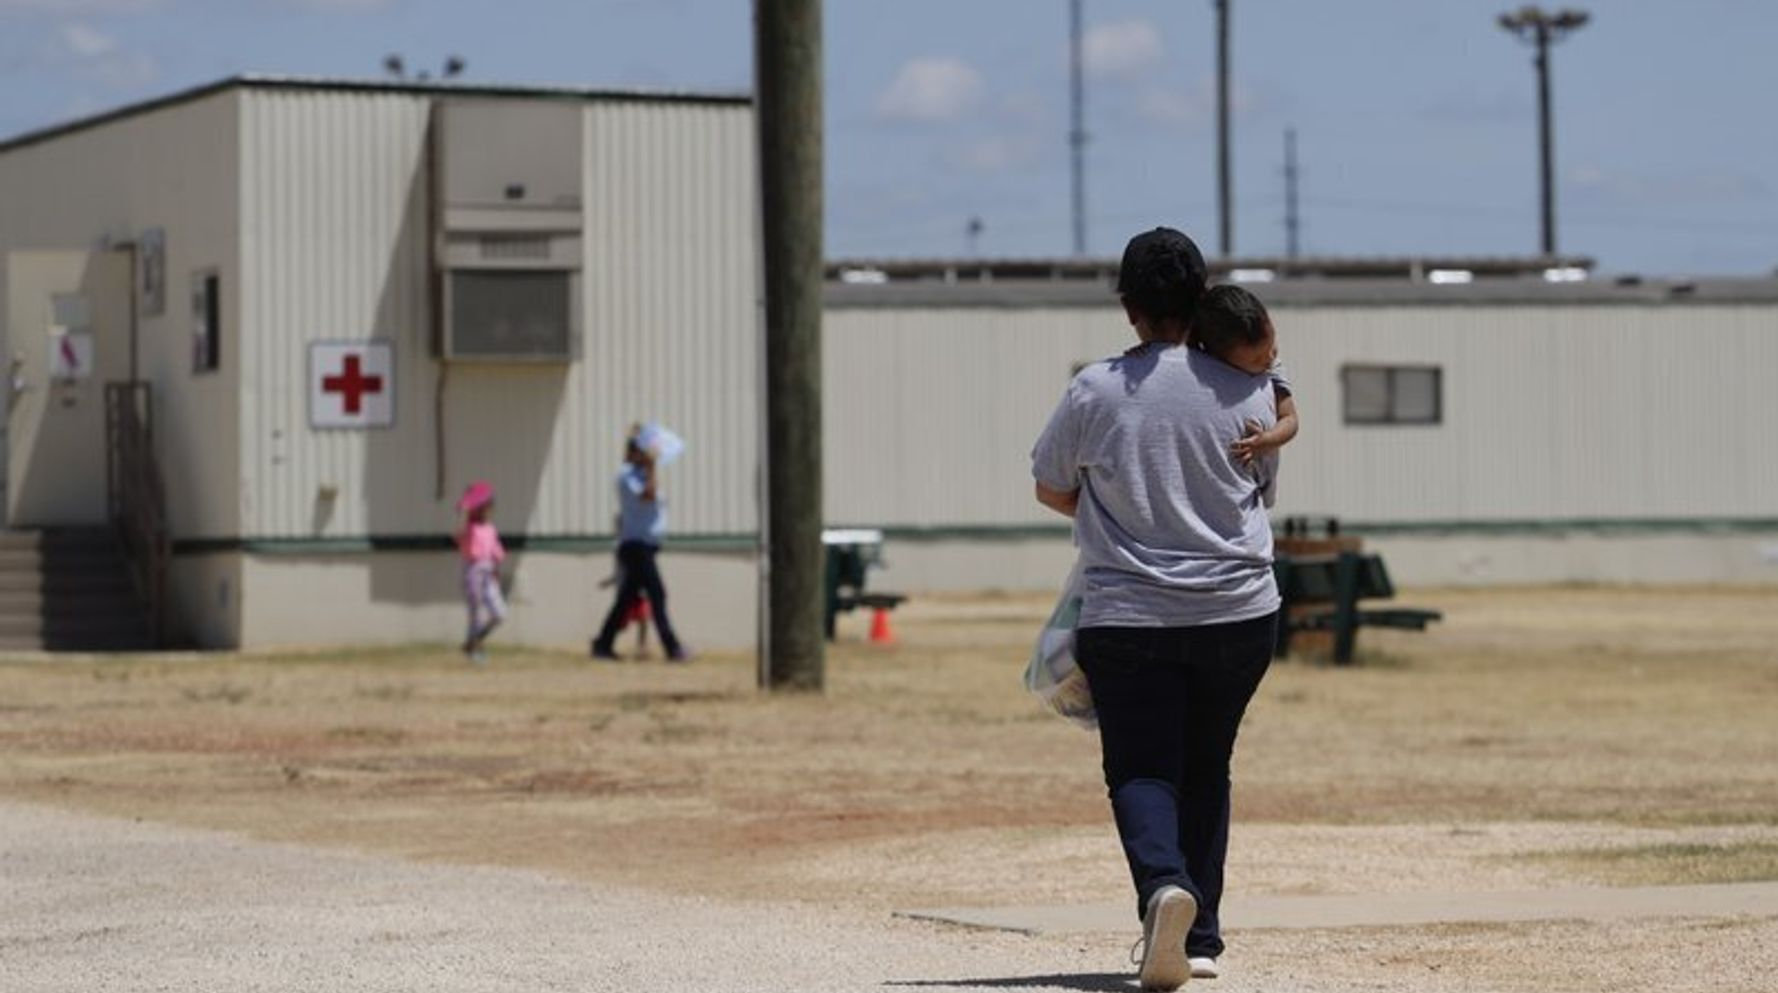 Trump Administration Ordered To Stop Expelling Children Who Cross Border